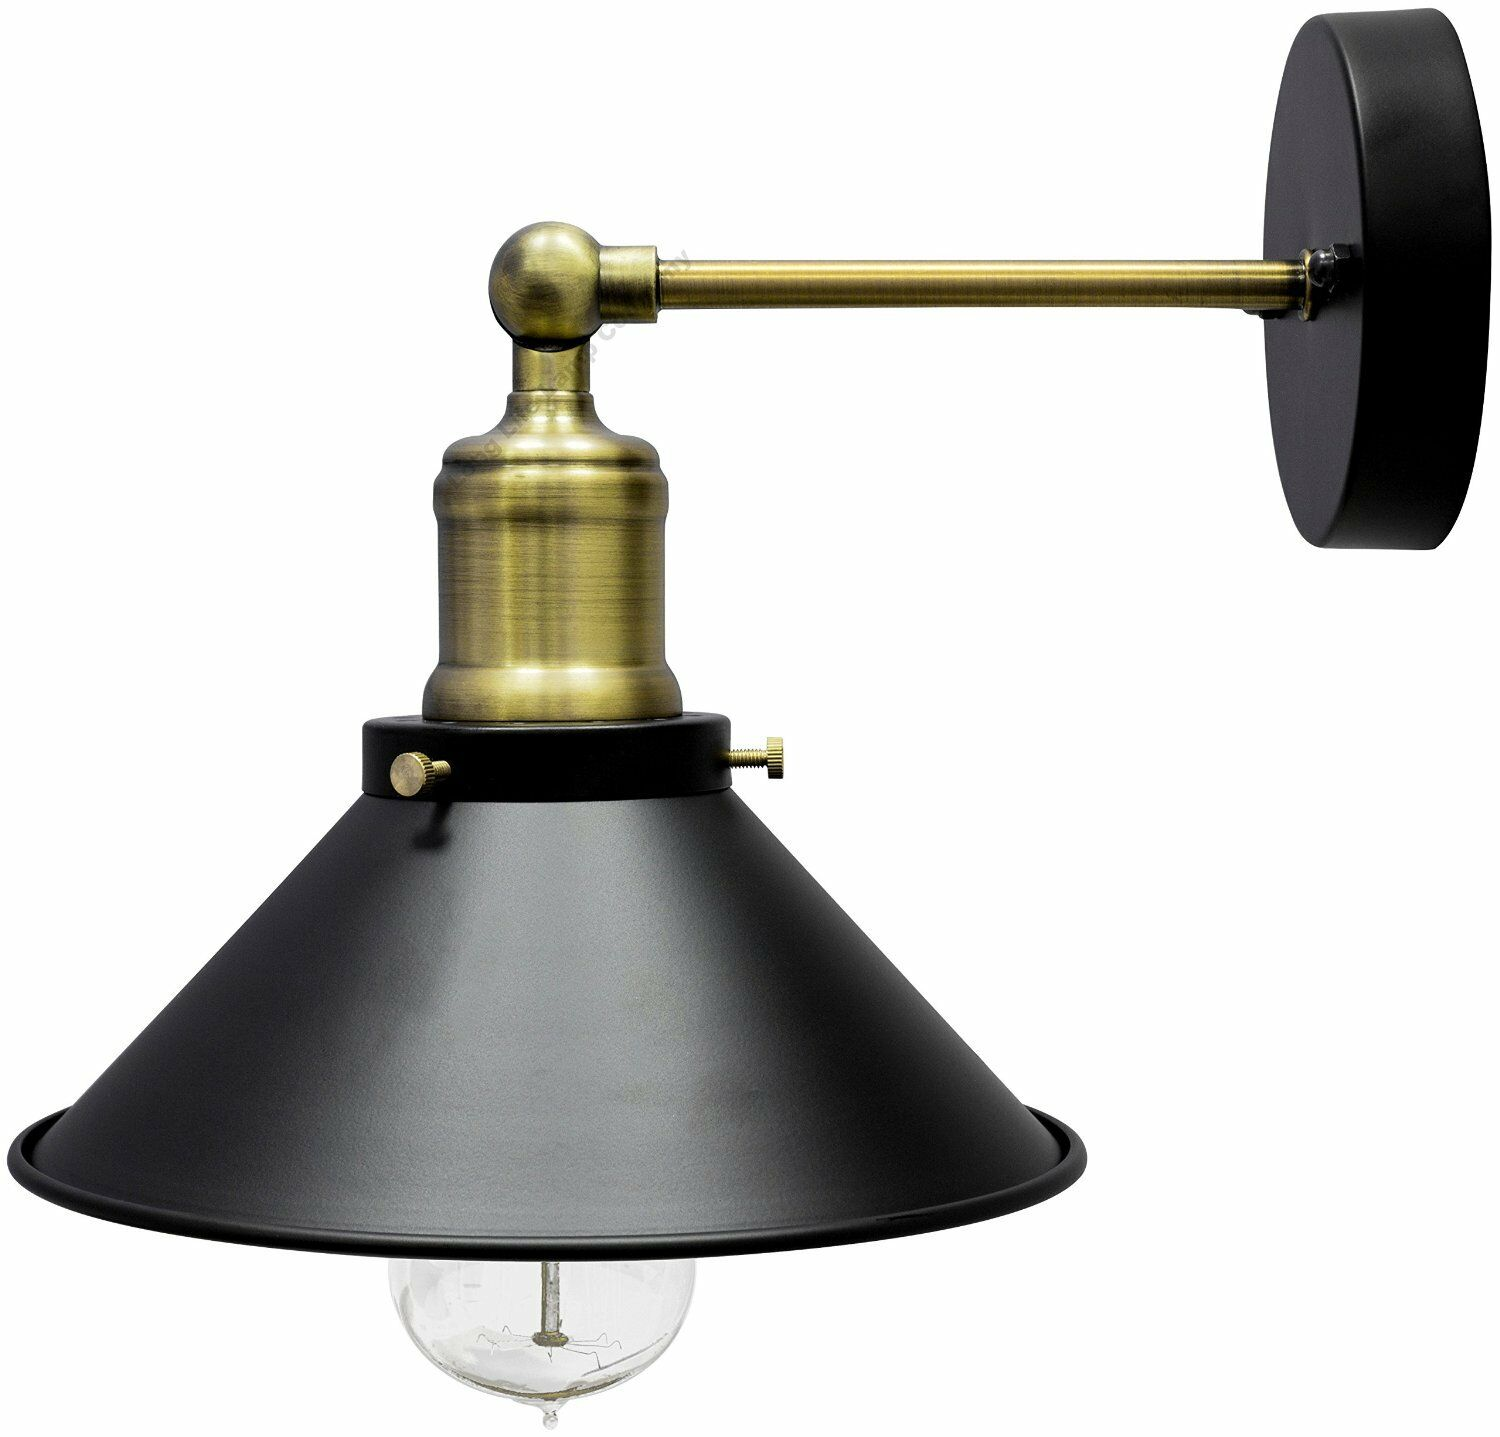 Modern Vintage Lights Modern Vintage Industrial Antique Brass Black Scone Wall